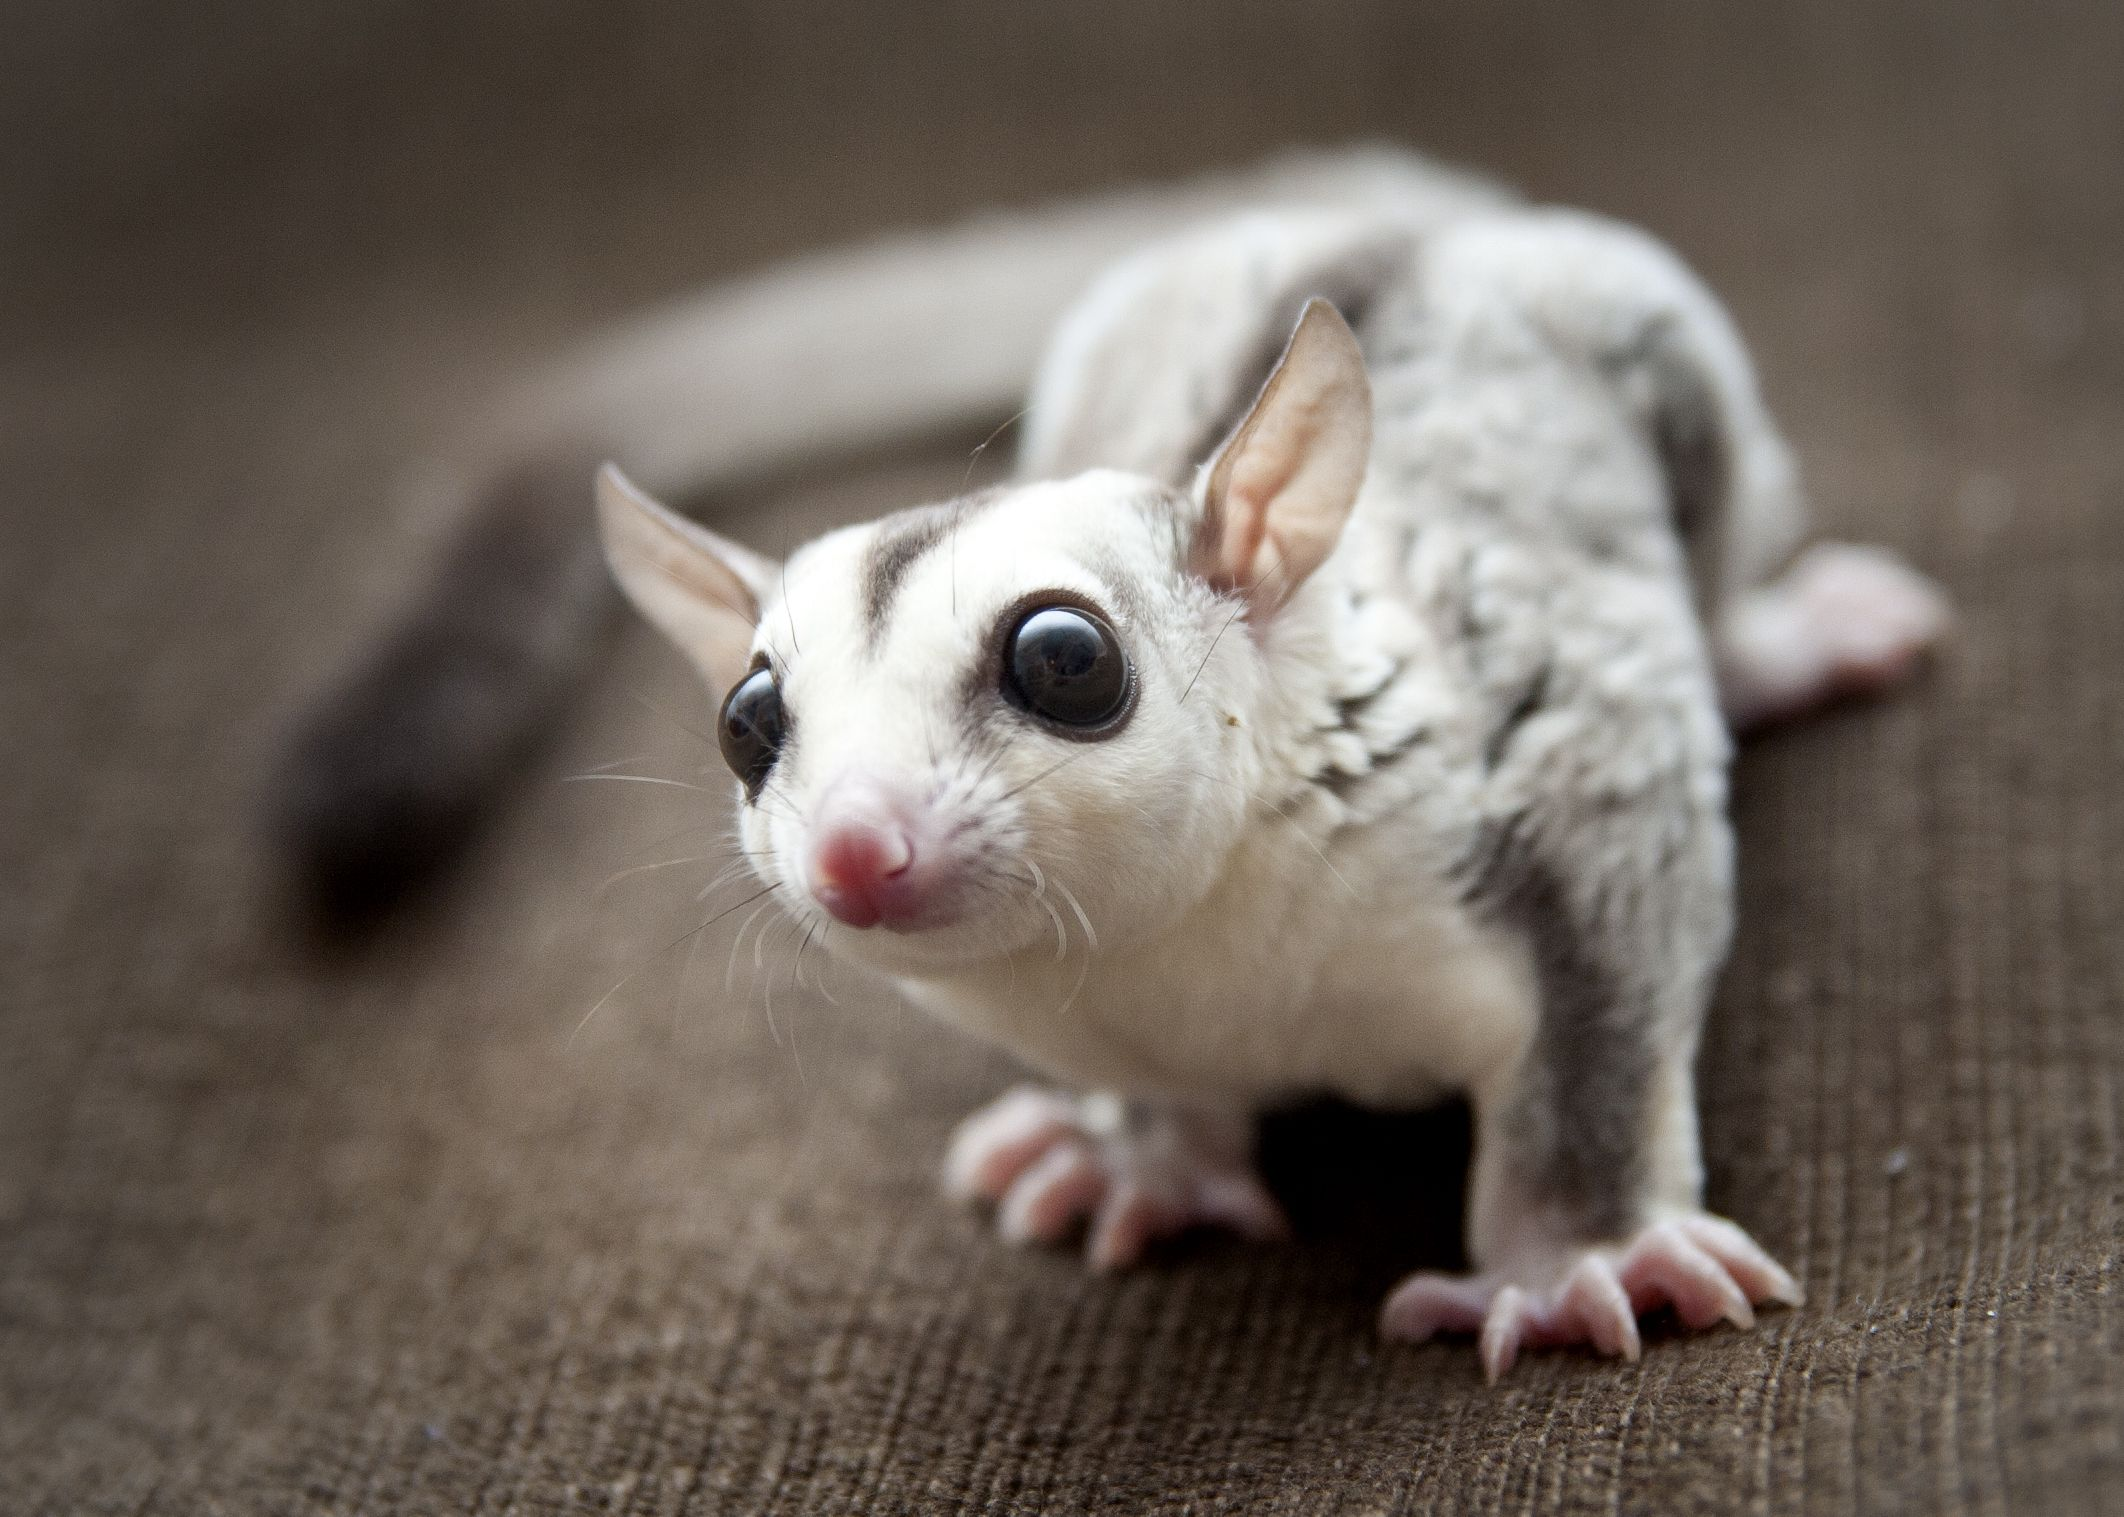 Socrates the Sugar Glider 4 month old whiteface blonde